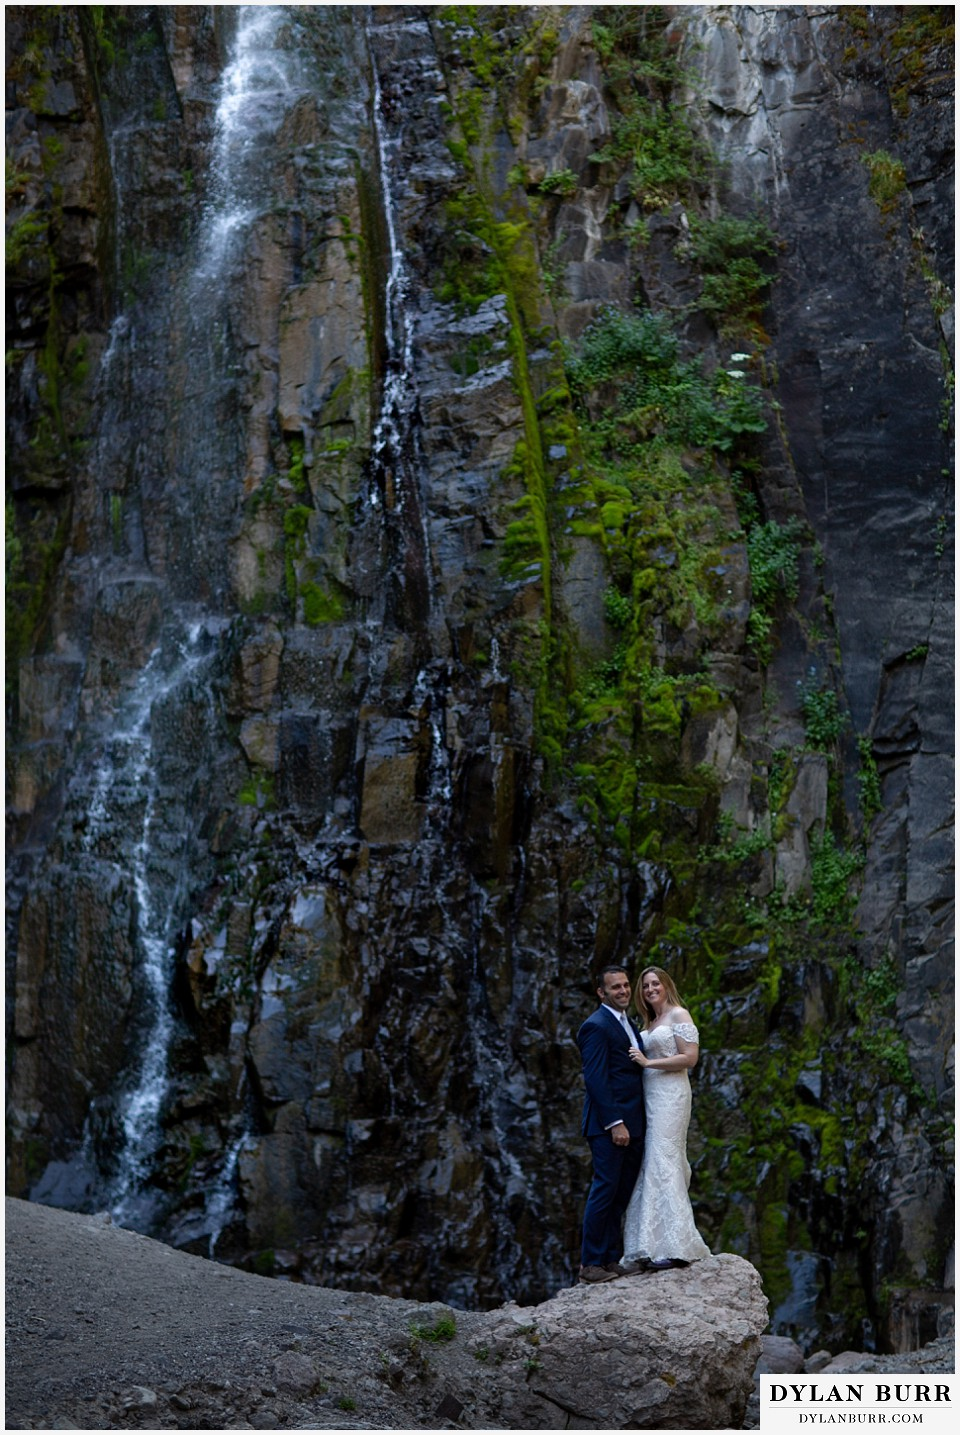 uncompahgre national forest colorado elopement wedding adventure bride and groom together on a rock near a waterfall